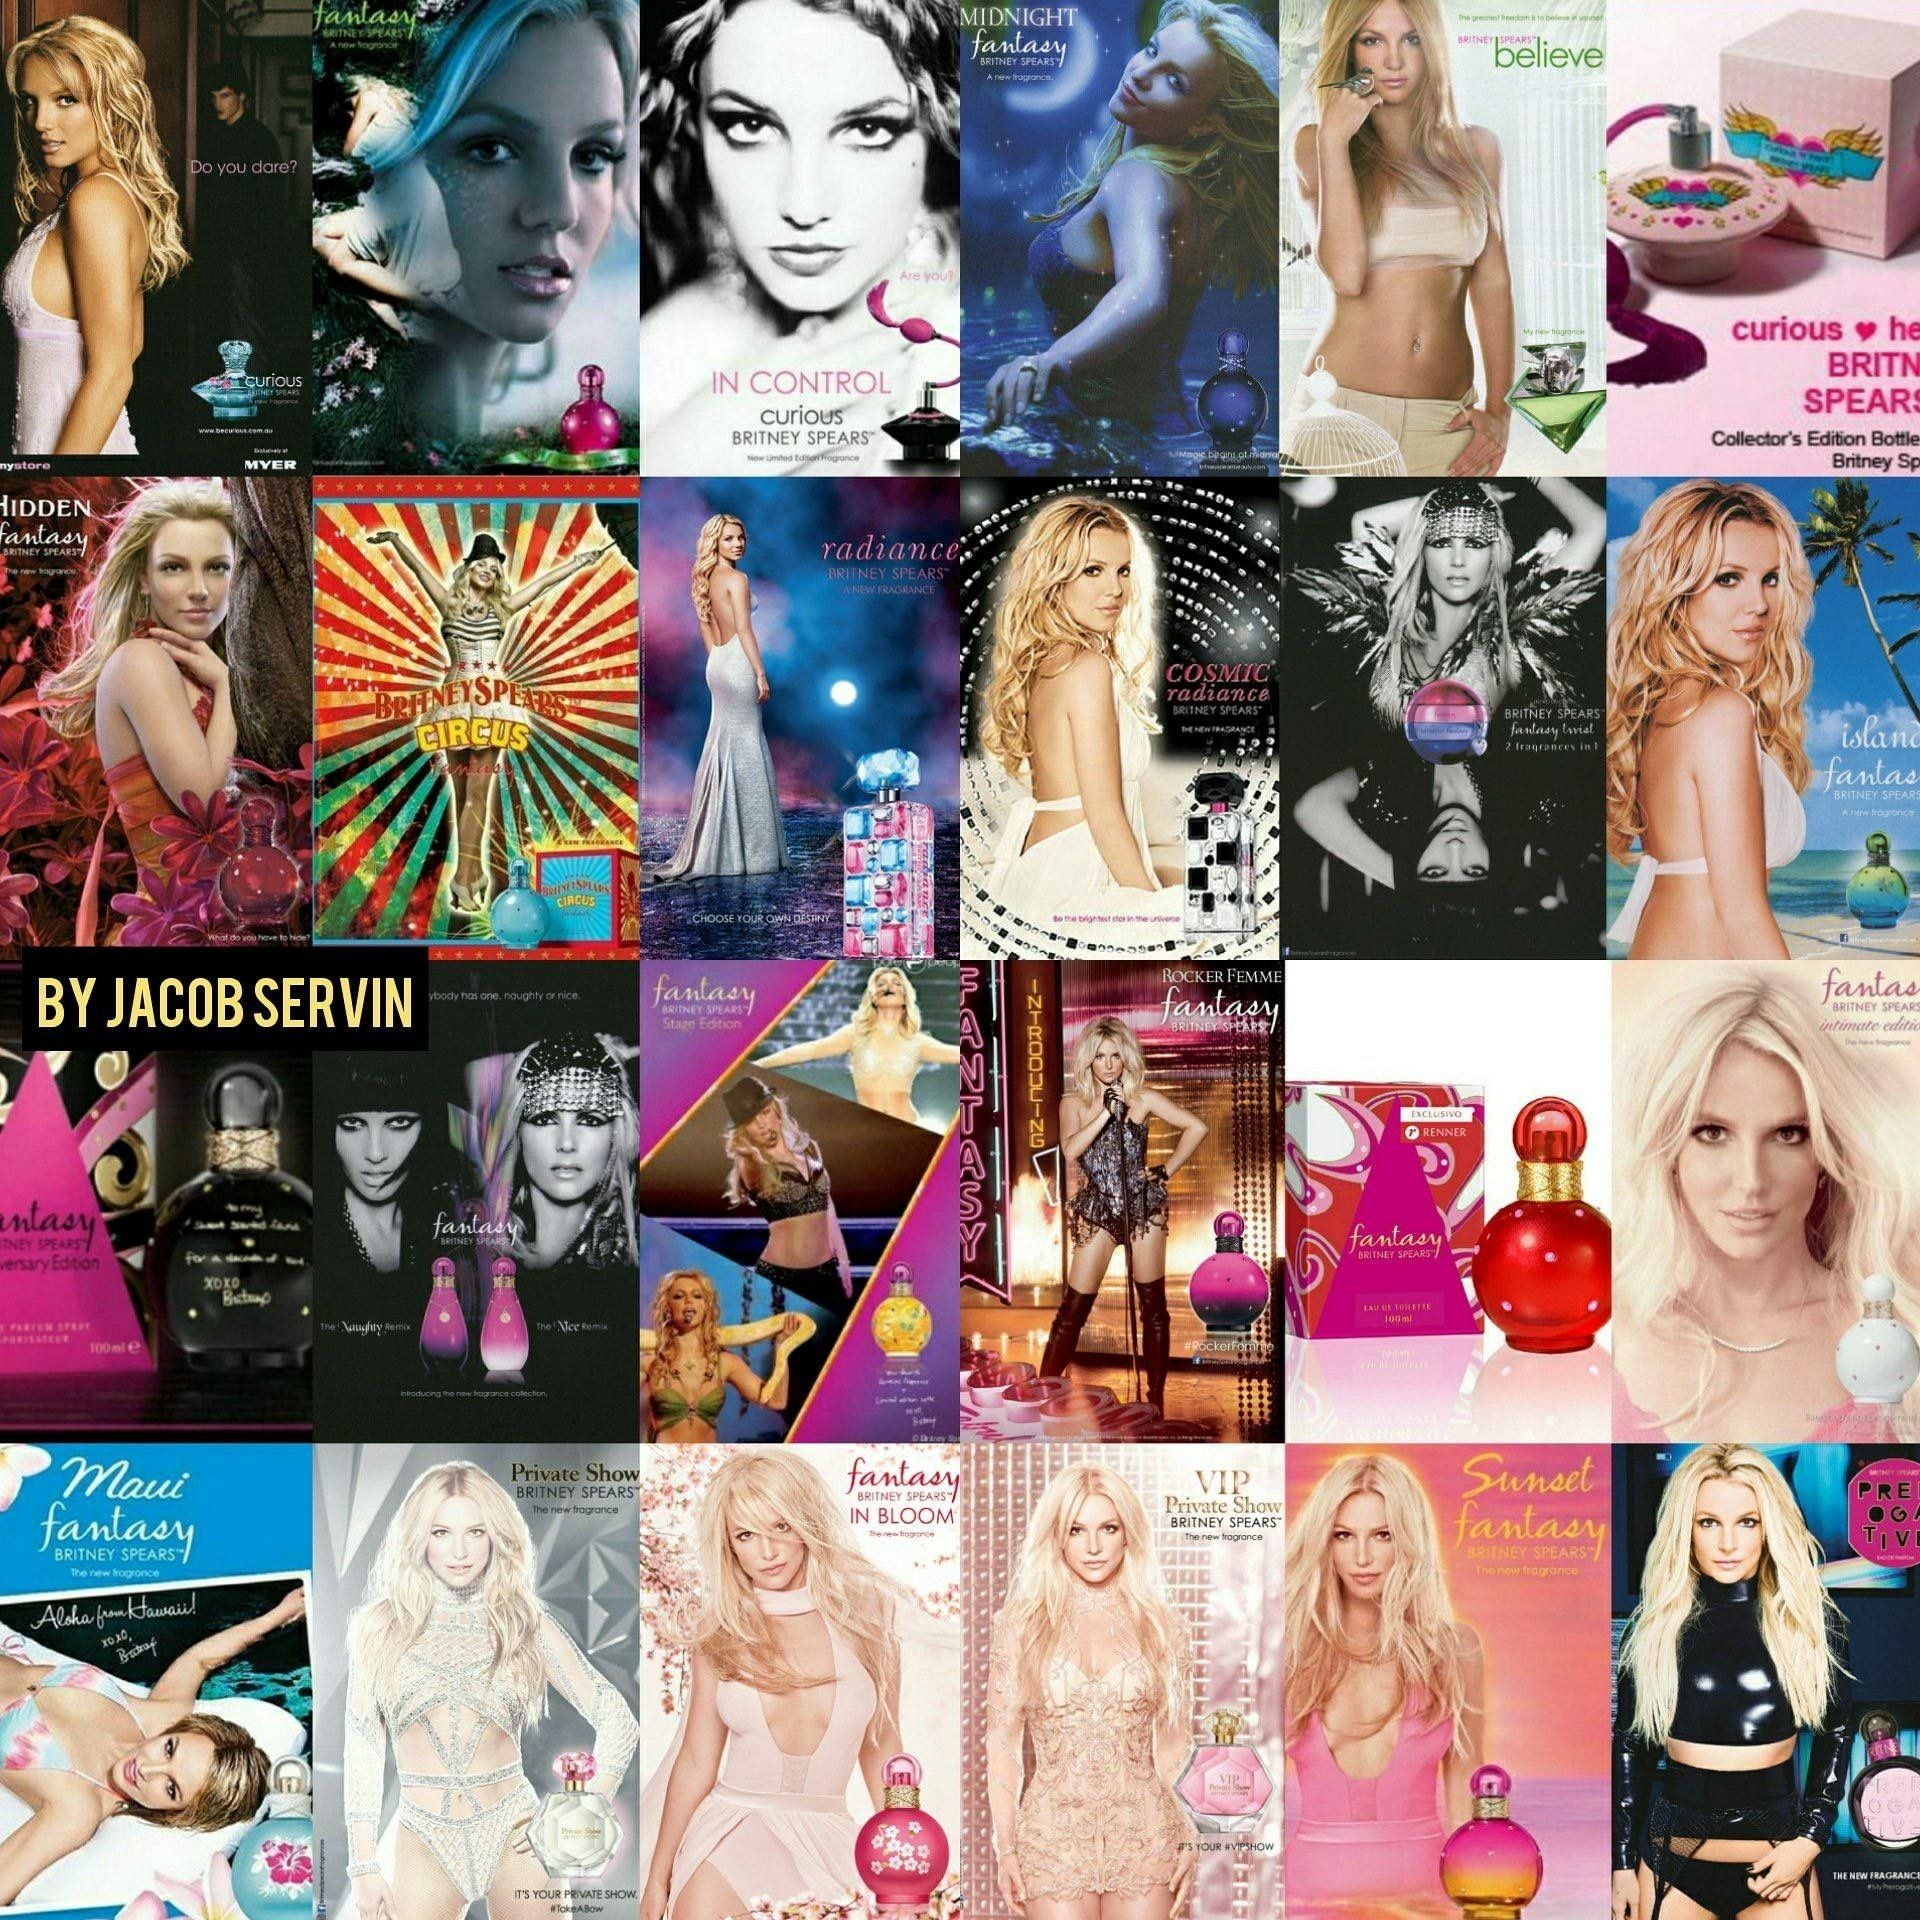 13 Britney Spears Photo American Super Star Picture Pop Singer Music Poster